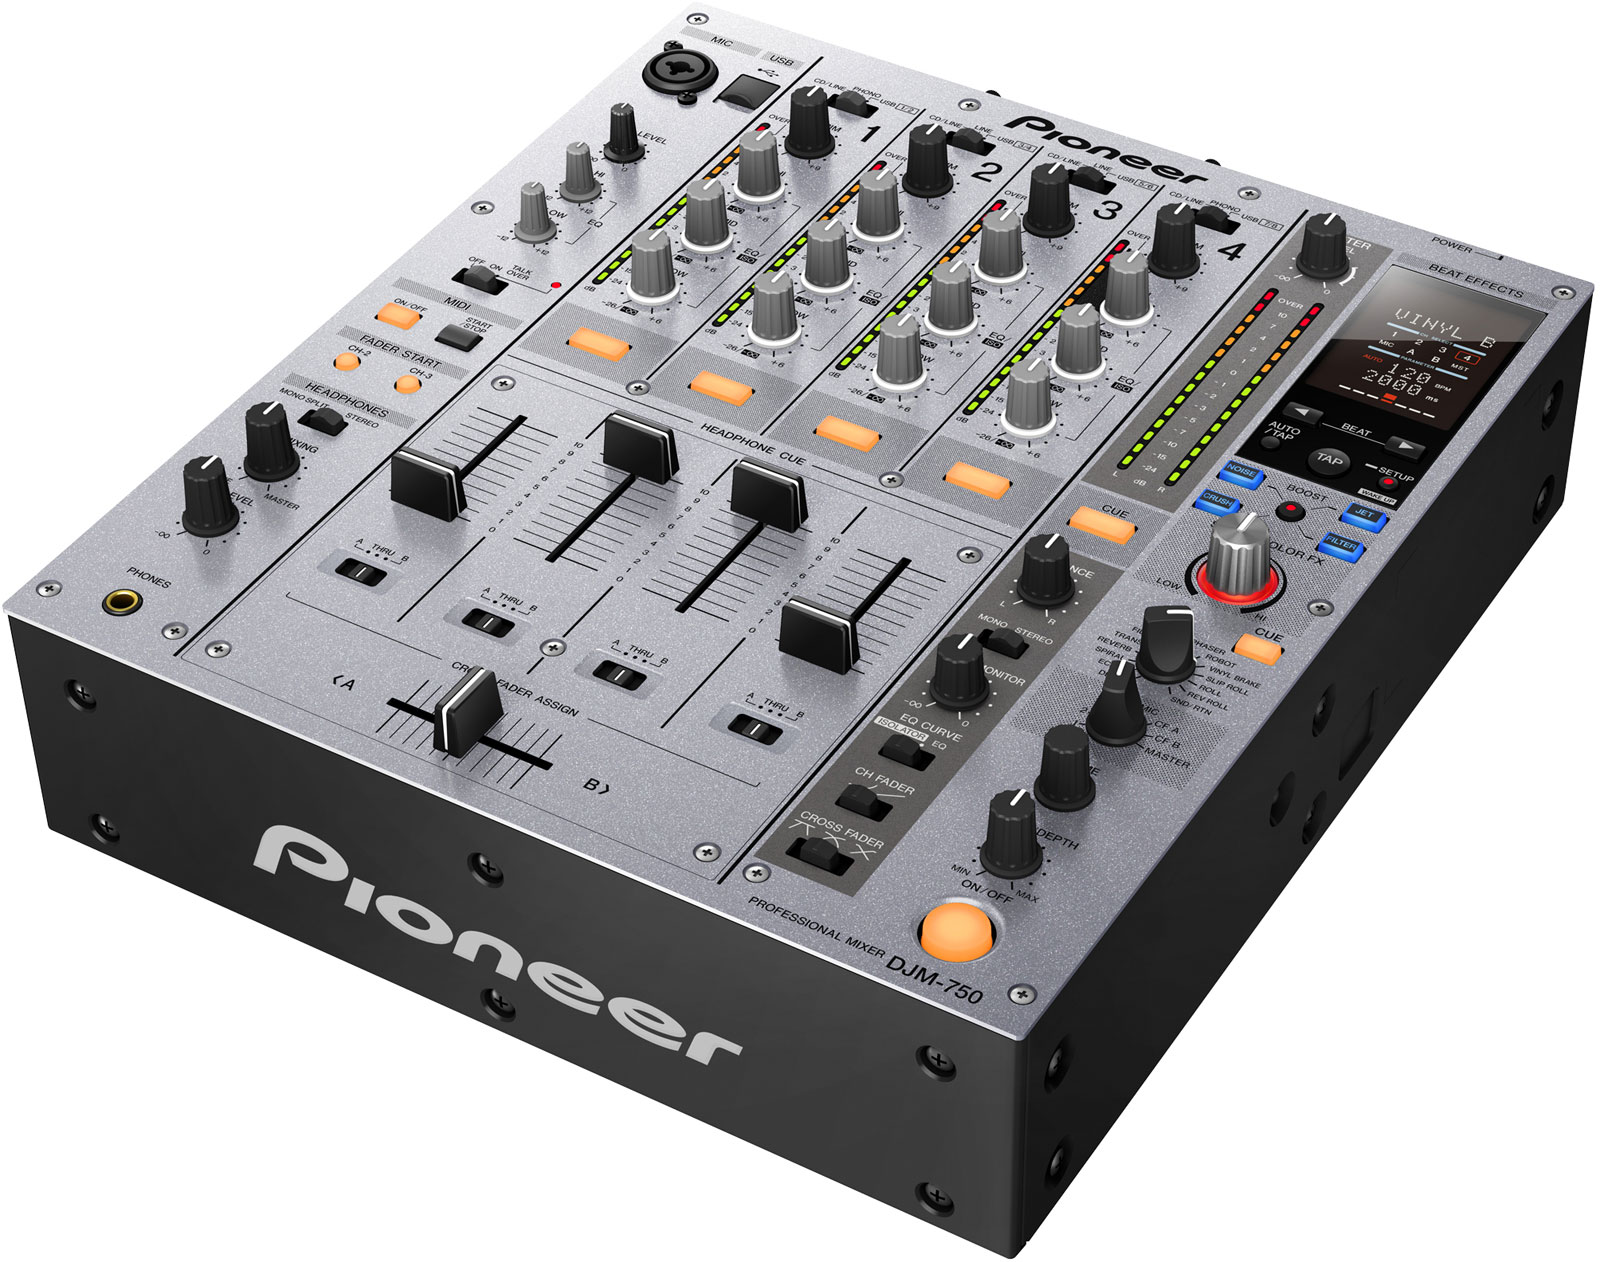 Table de mixage DJM750